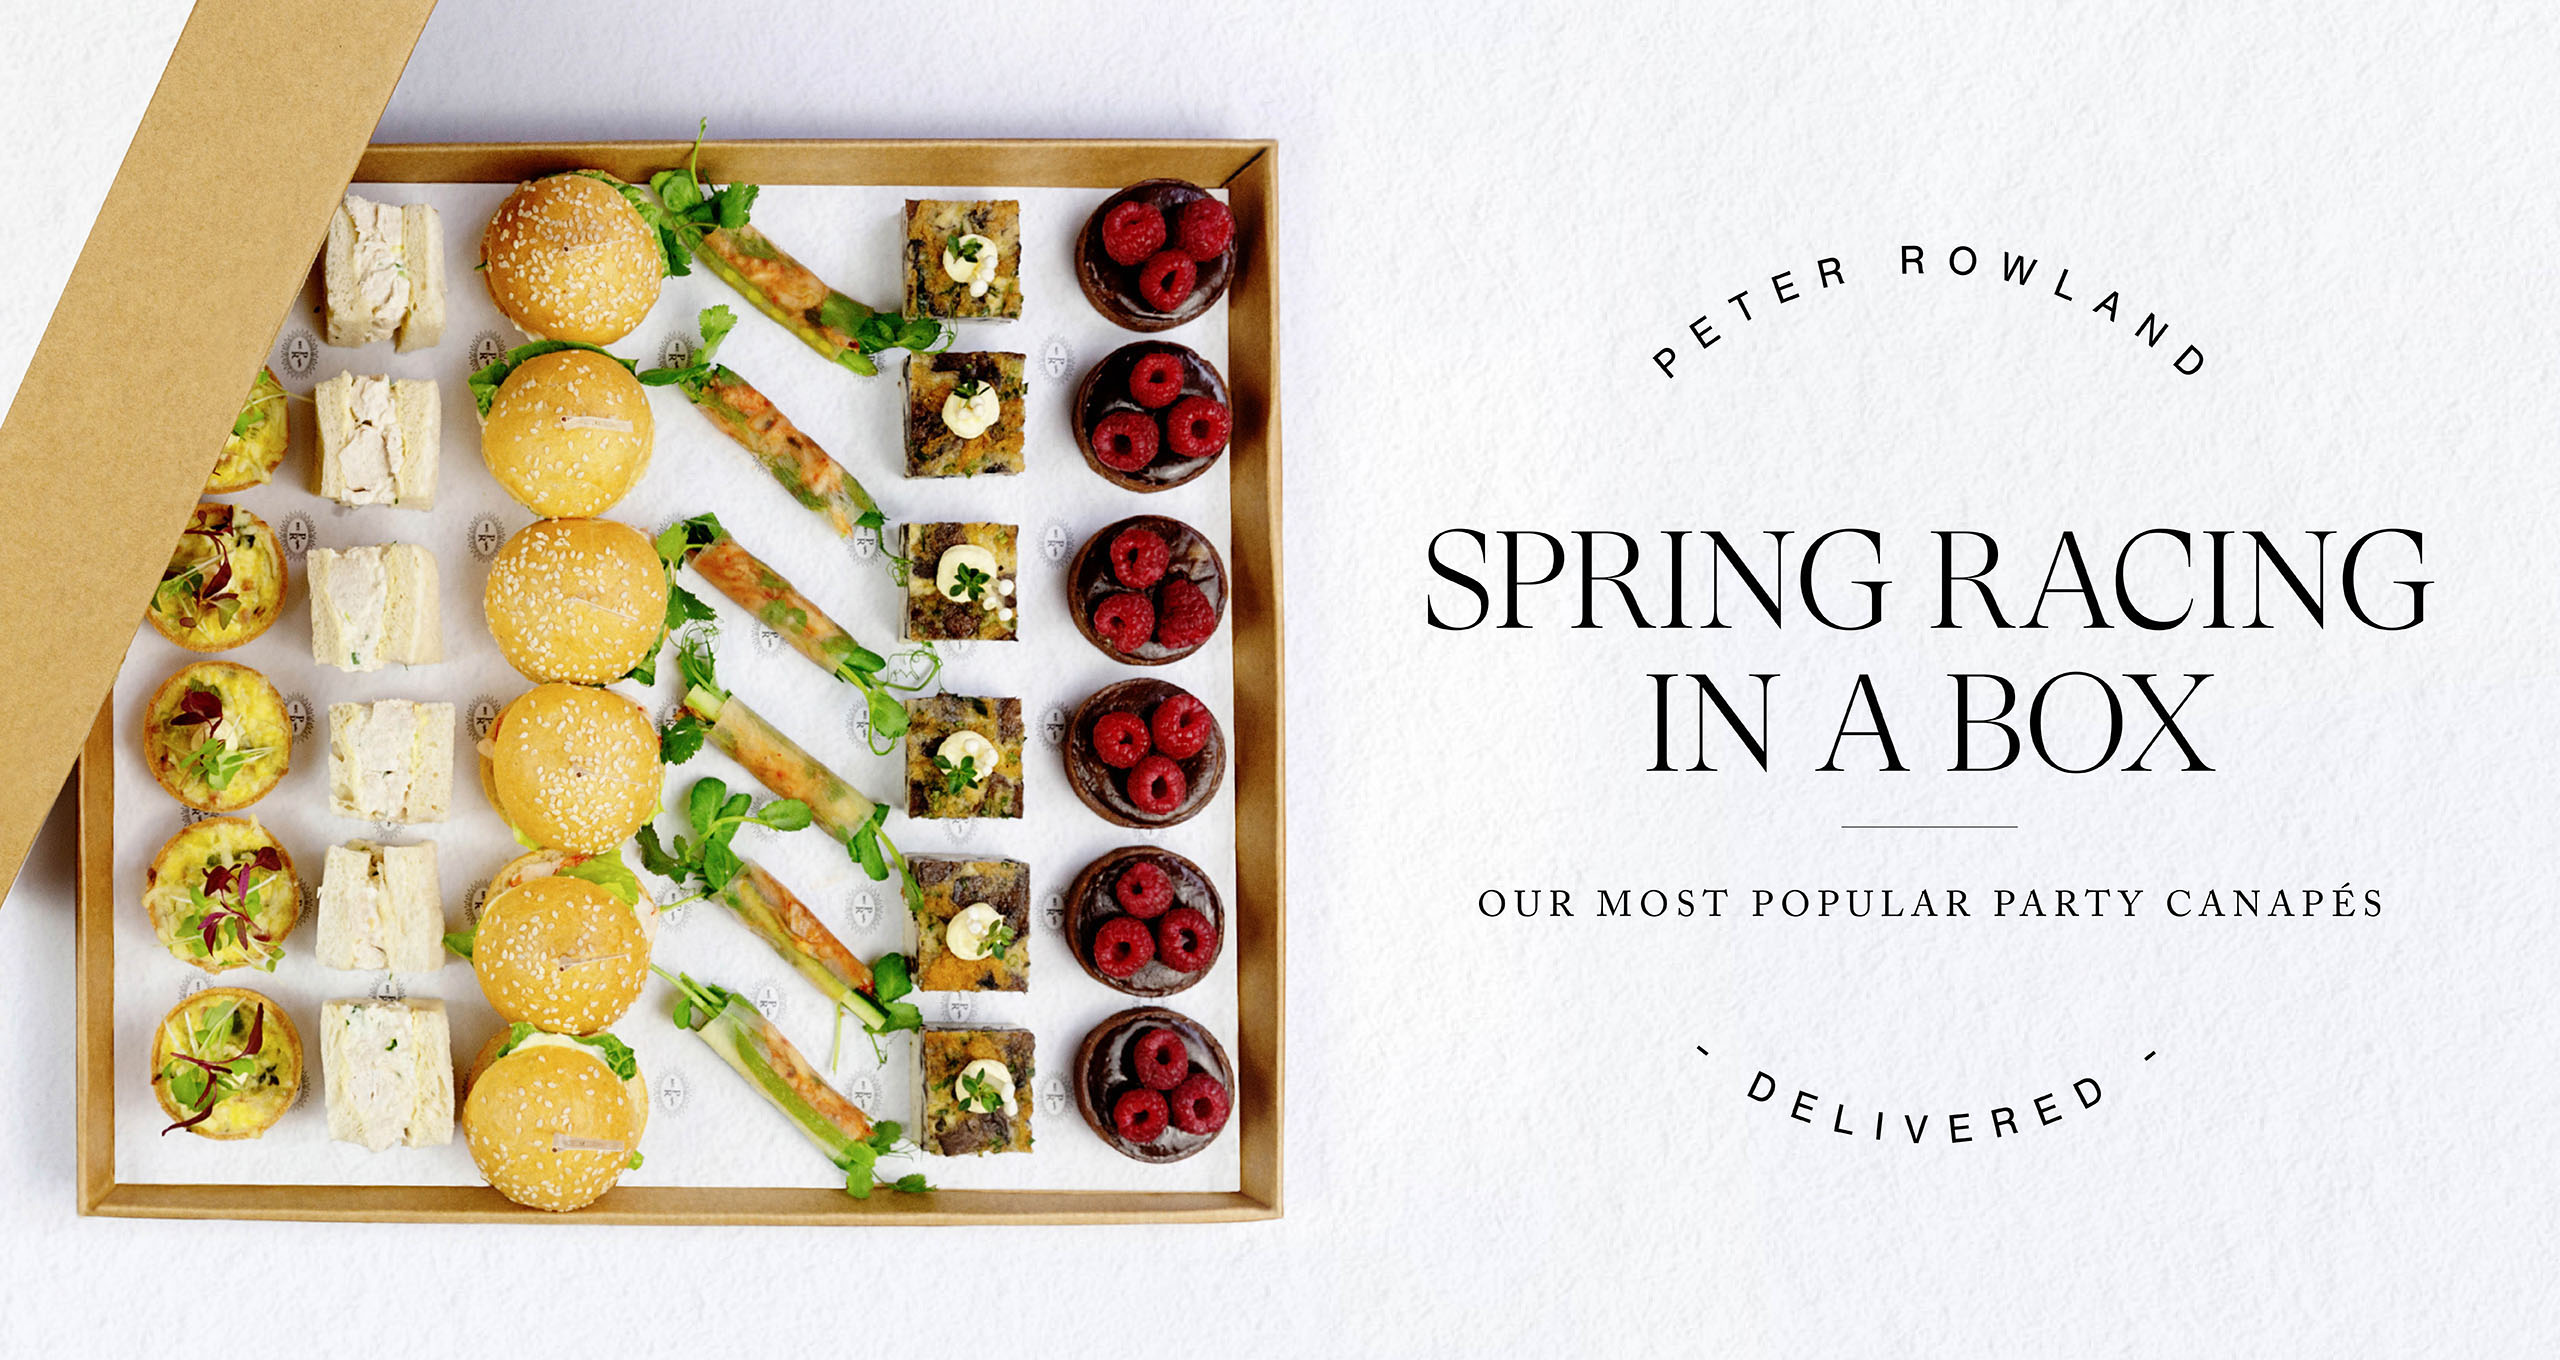 Peter Rowland Spring Racing Canapes Delivered Boxes